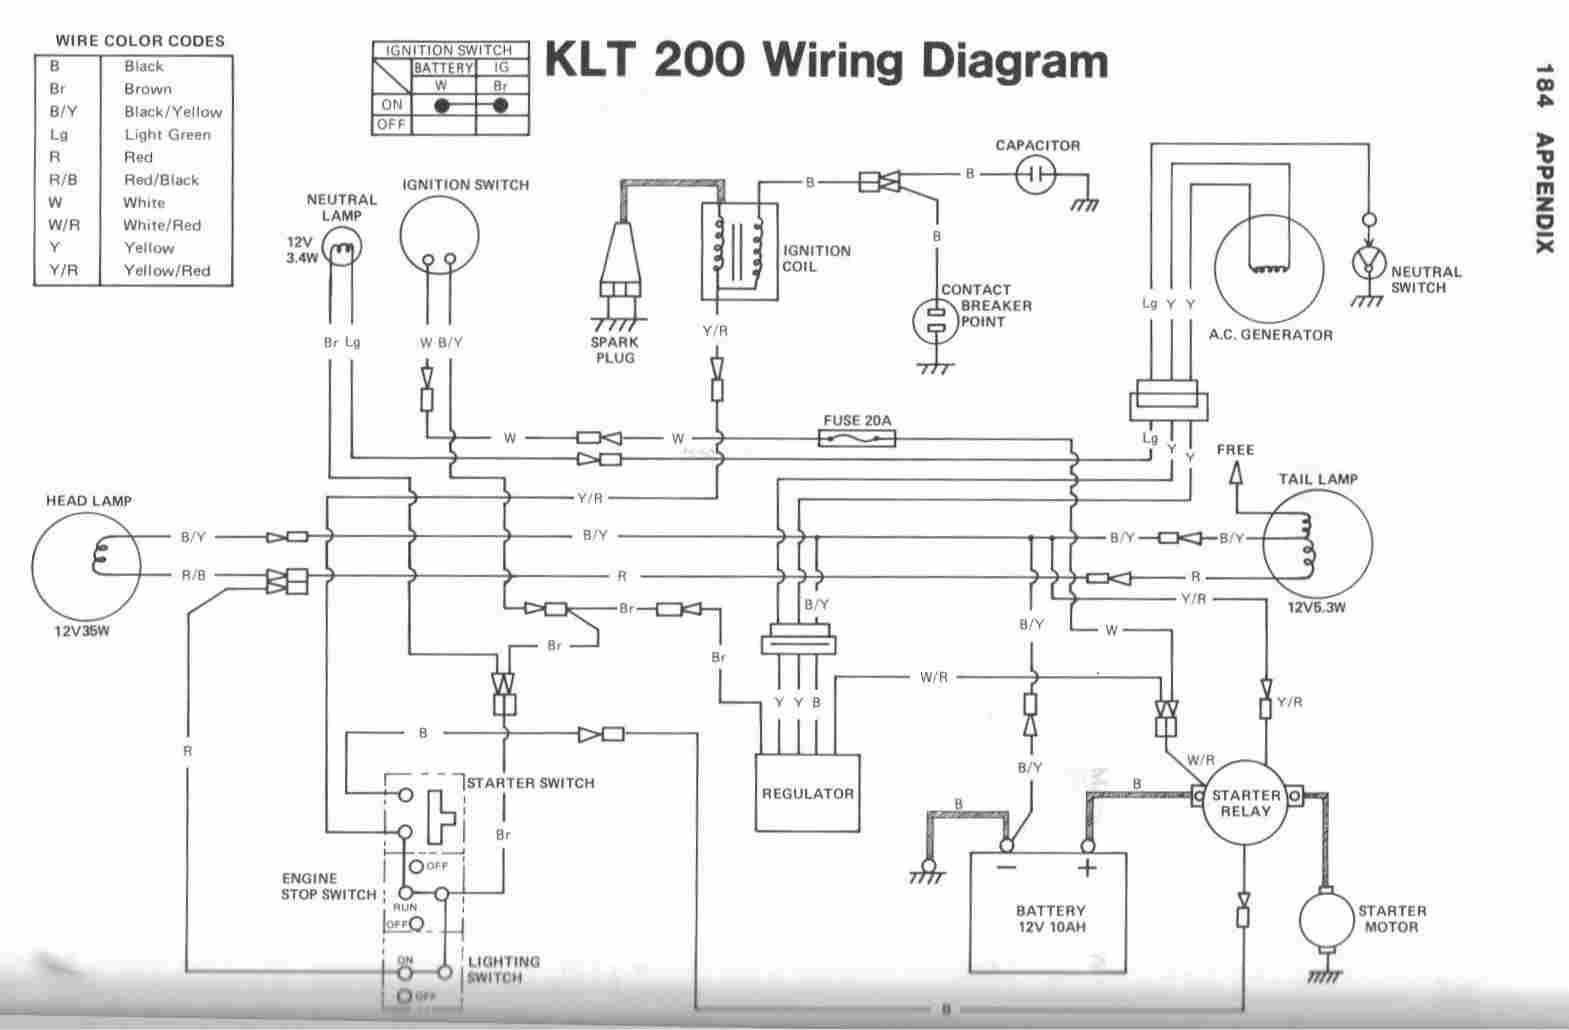 s plan wiring diagram vrcd400 sdu residential electrical diagrams pdf easy routing